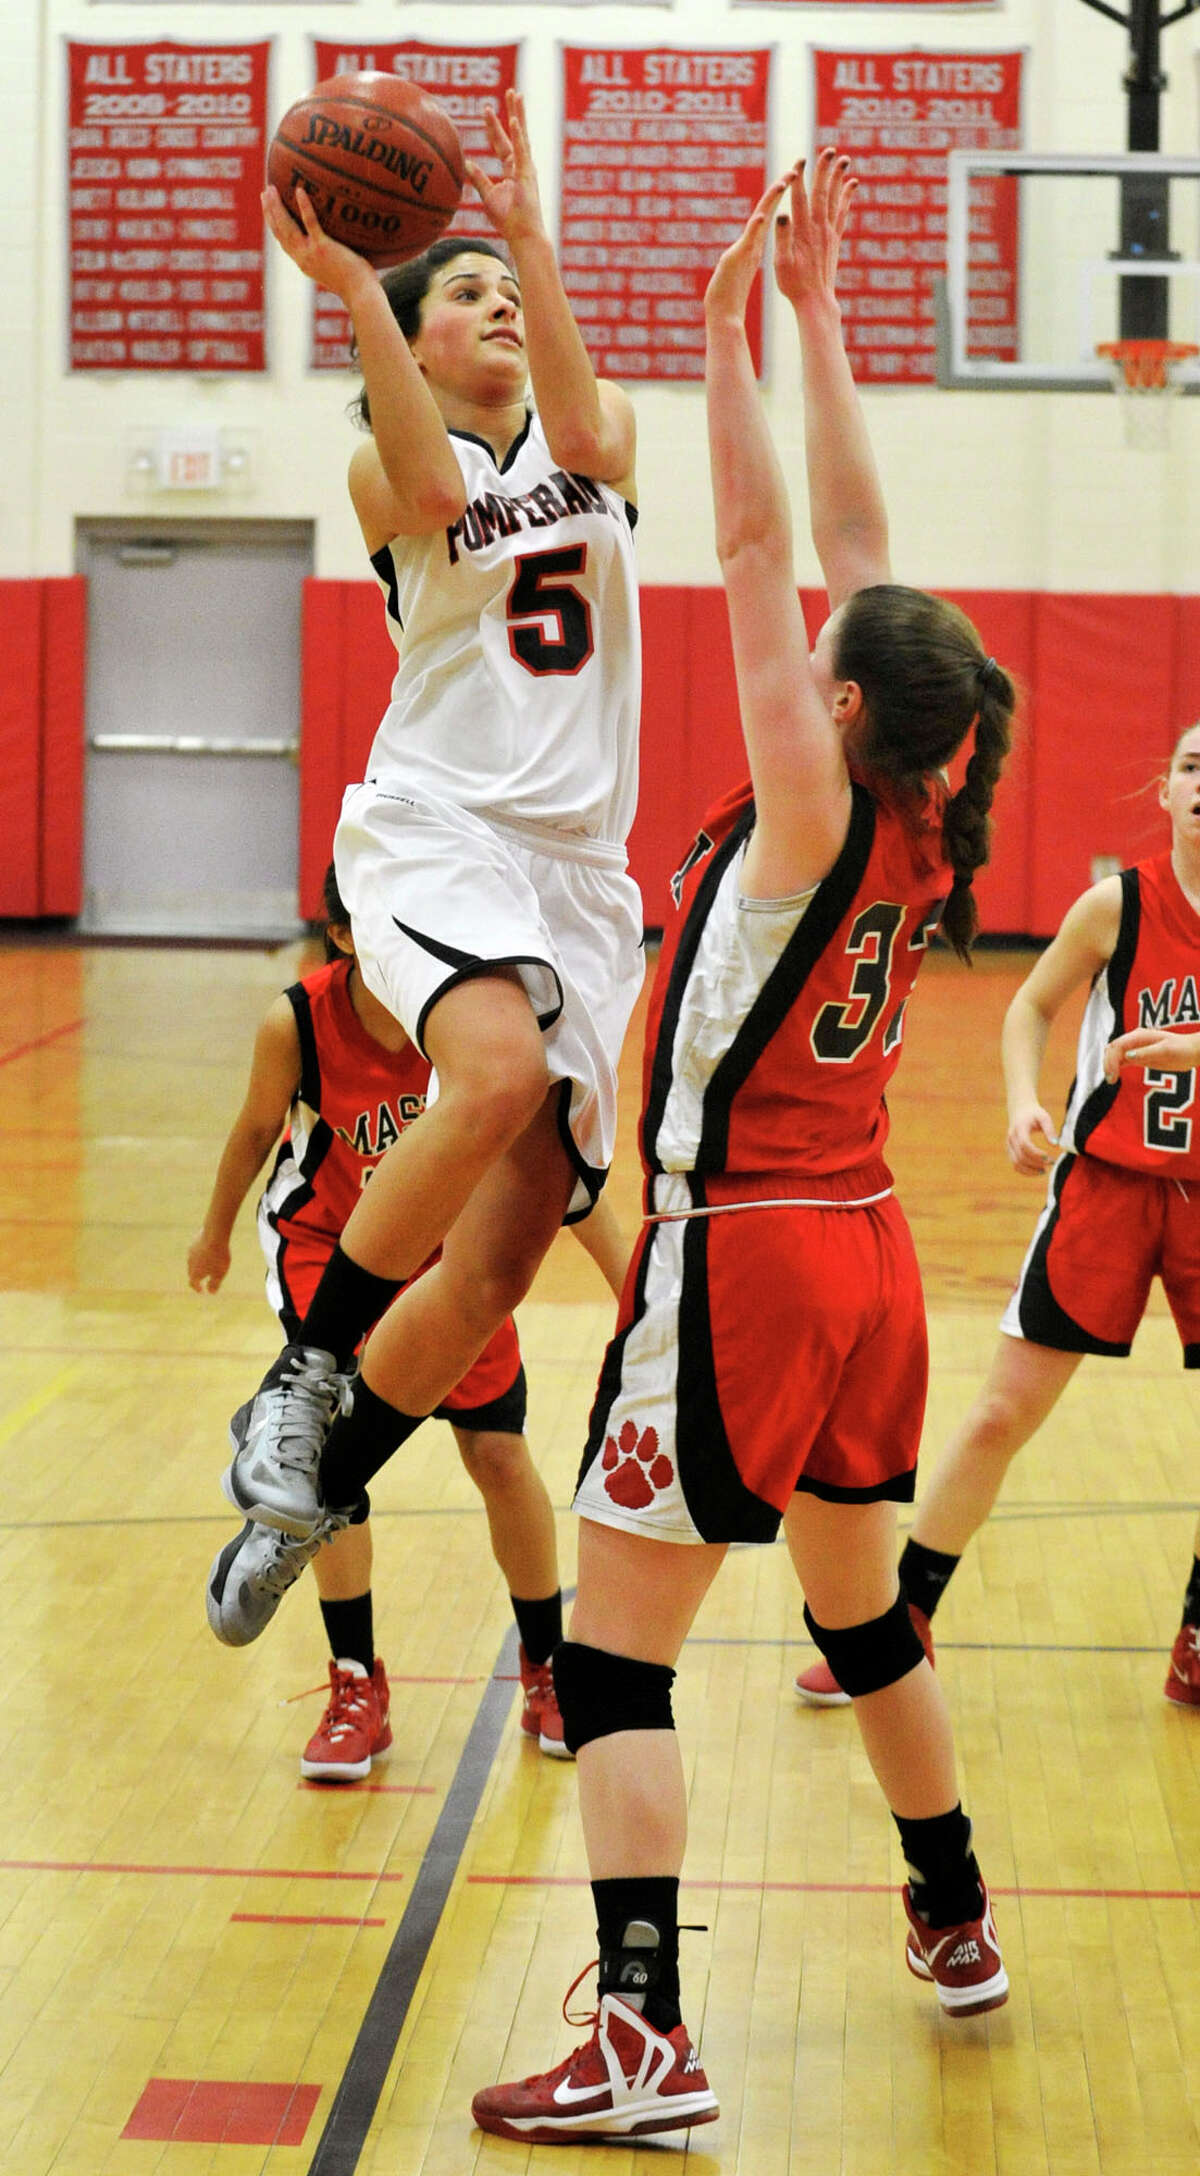 Pomperaug's Morgan Metcalf shoots over Masuk's Danielle Adams during their game at Pomperaug High School in Southbury on Tuesday, Jan. 8, 2013. Pomperaug won, 60-38.